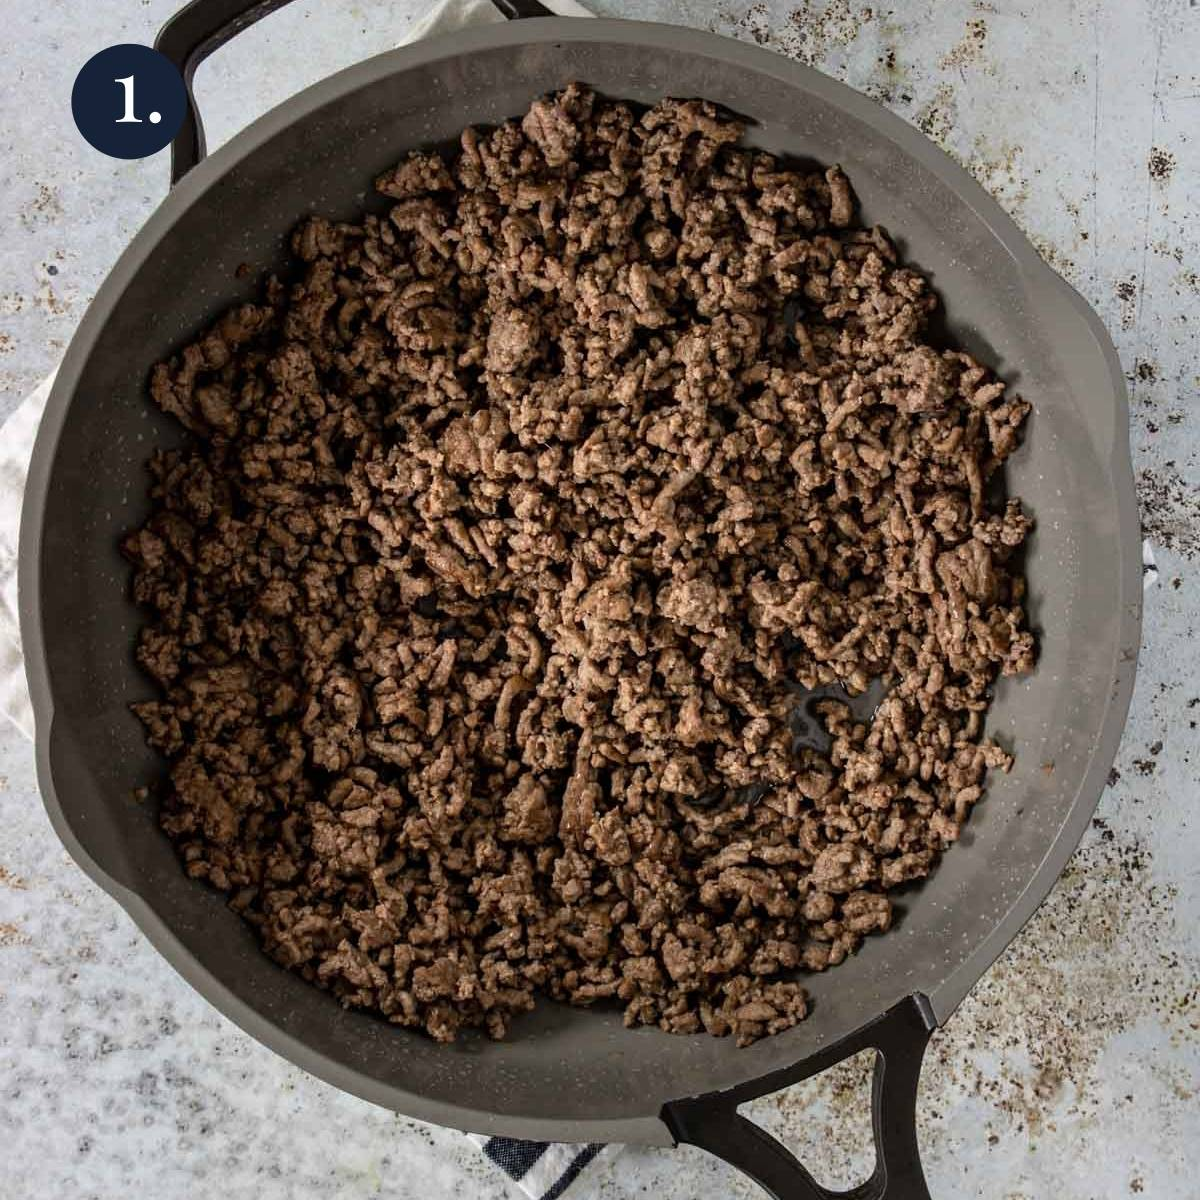 ground beef crumbled and cooked in a skillet